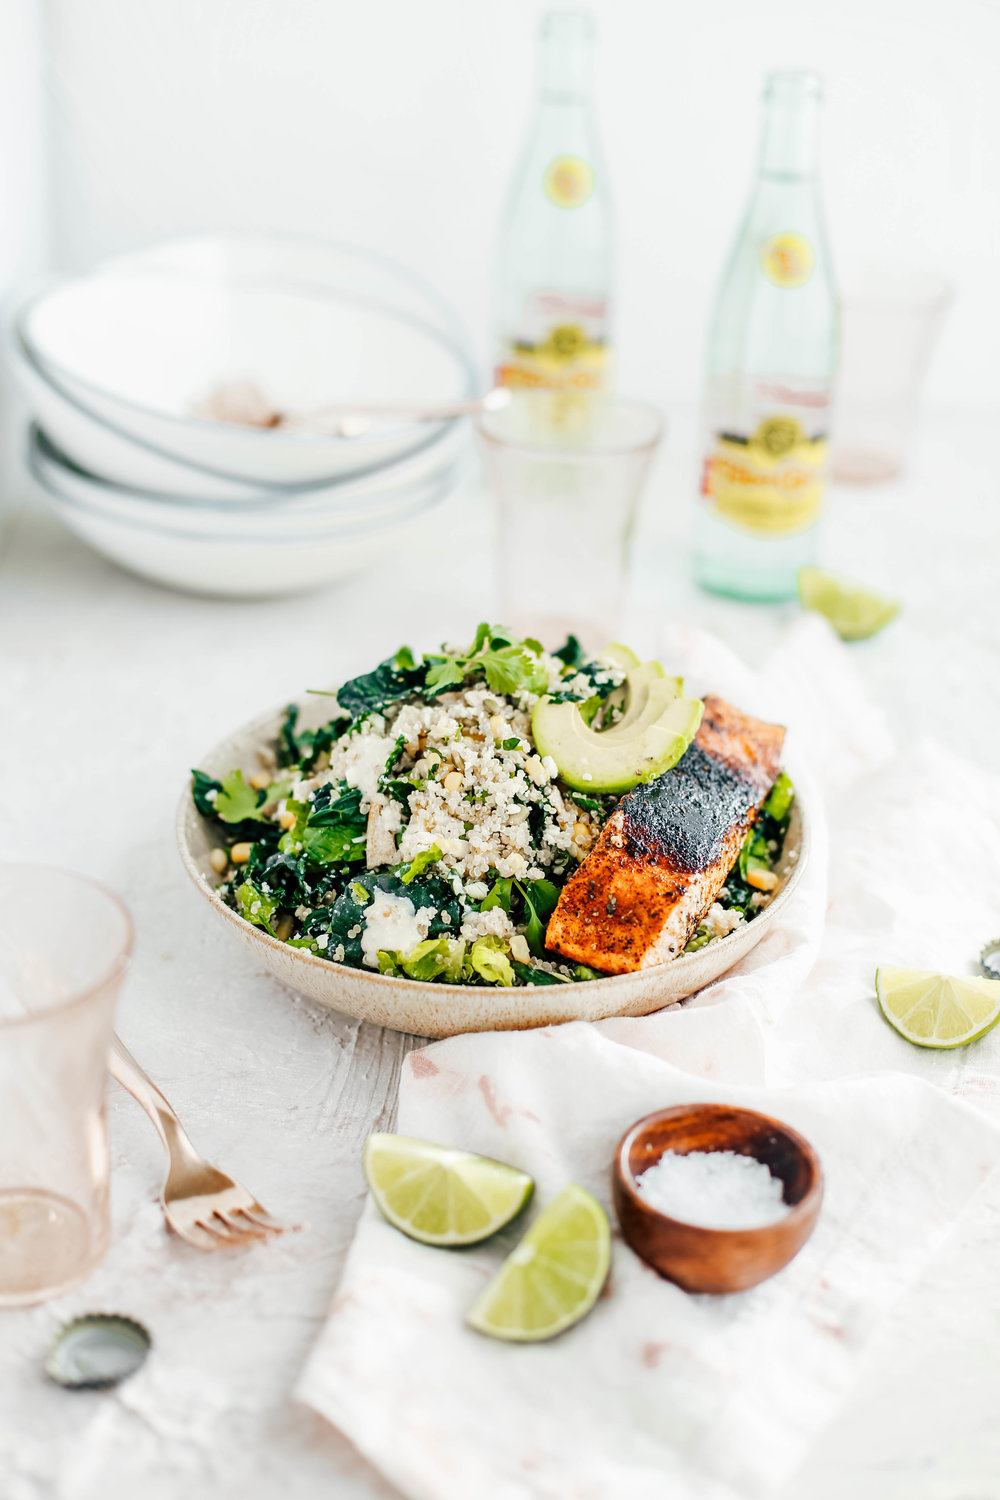 Golden Corn & Quinoa Mexican Caesar Salad with Blackened Salmon-11.jpg